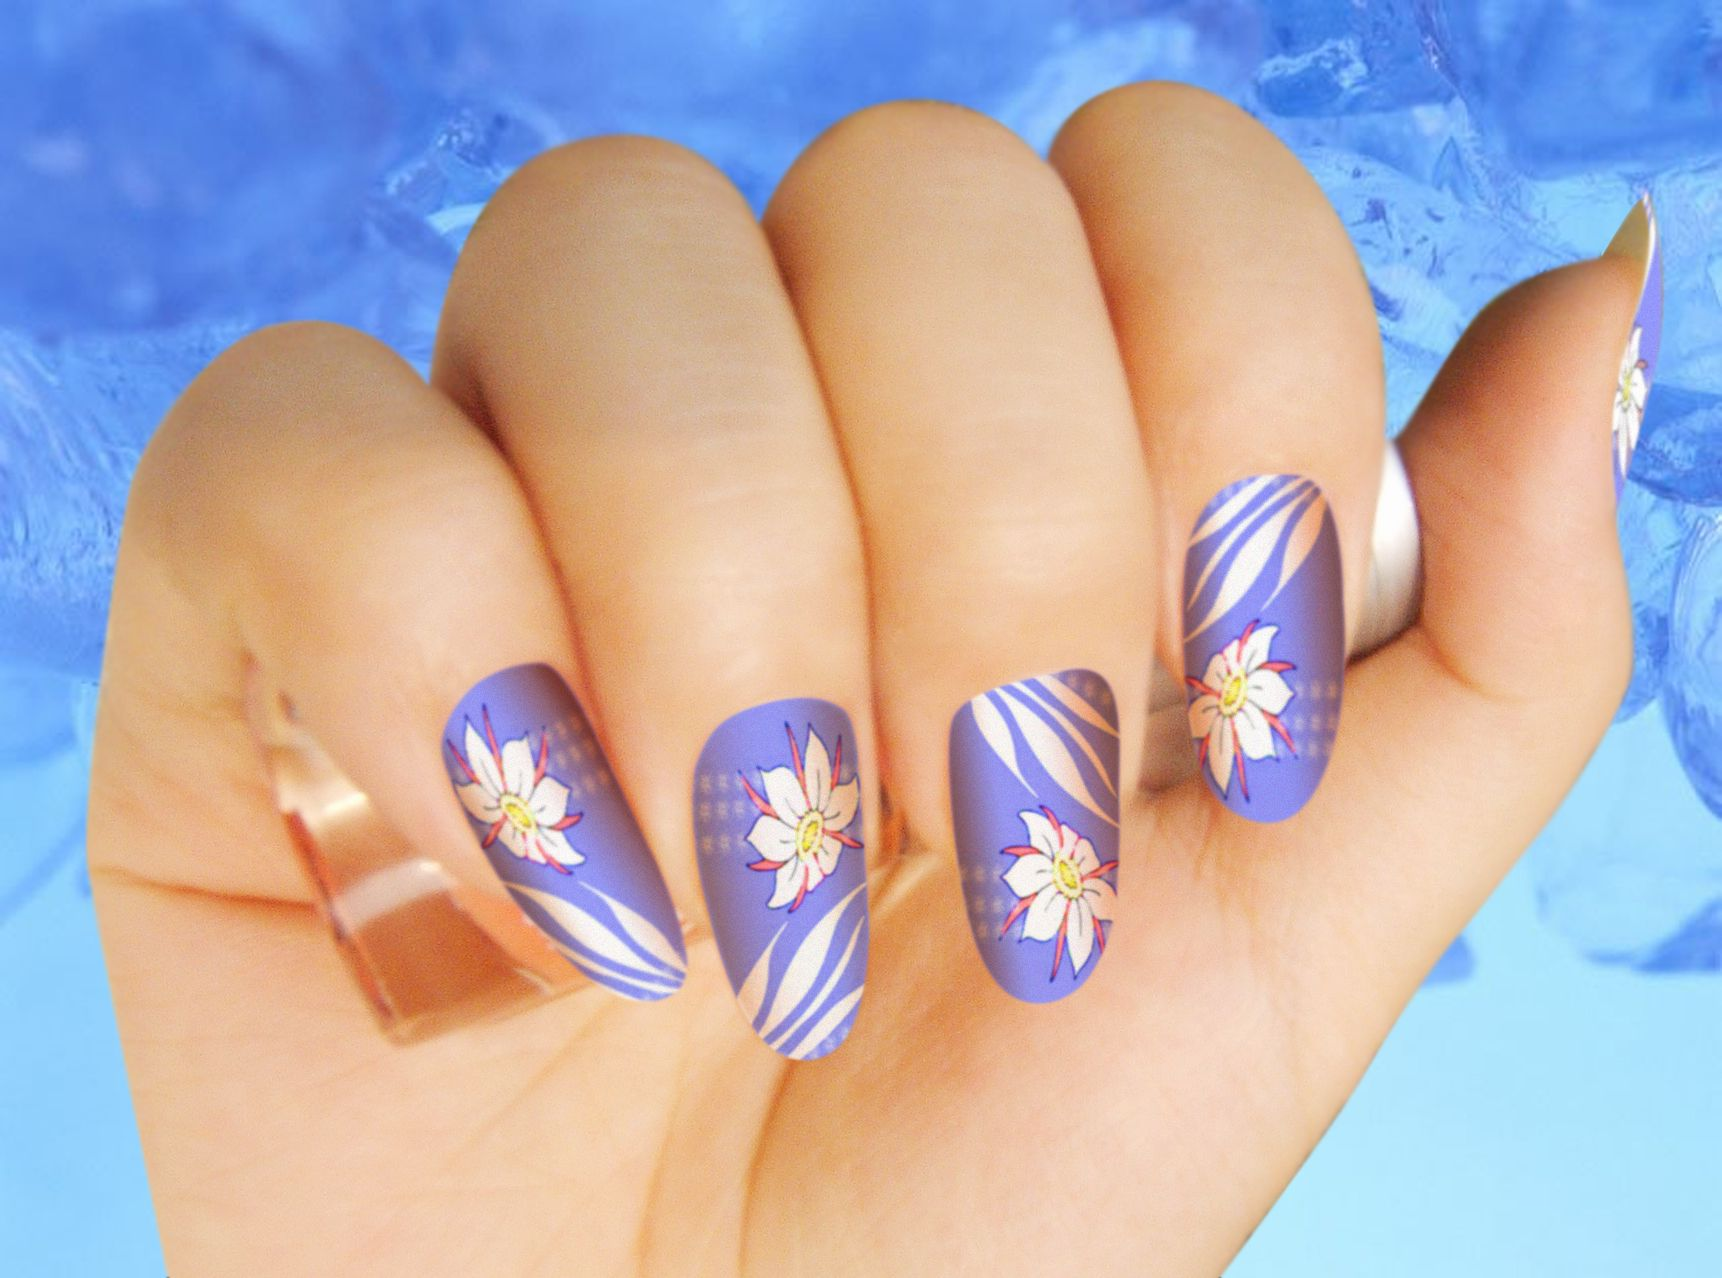 Nail paint 4 hd images tashara barnowski pinterest creative blue nail art and blue nails color is a color which fit very well with jeans though blue color is superb you need to get good ideas to get wonderful nail prinsesfo Images